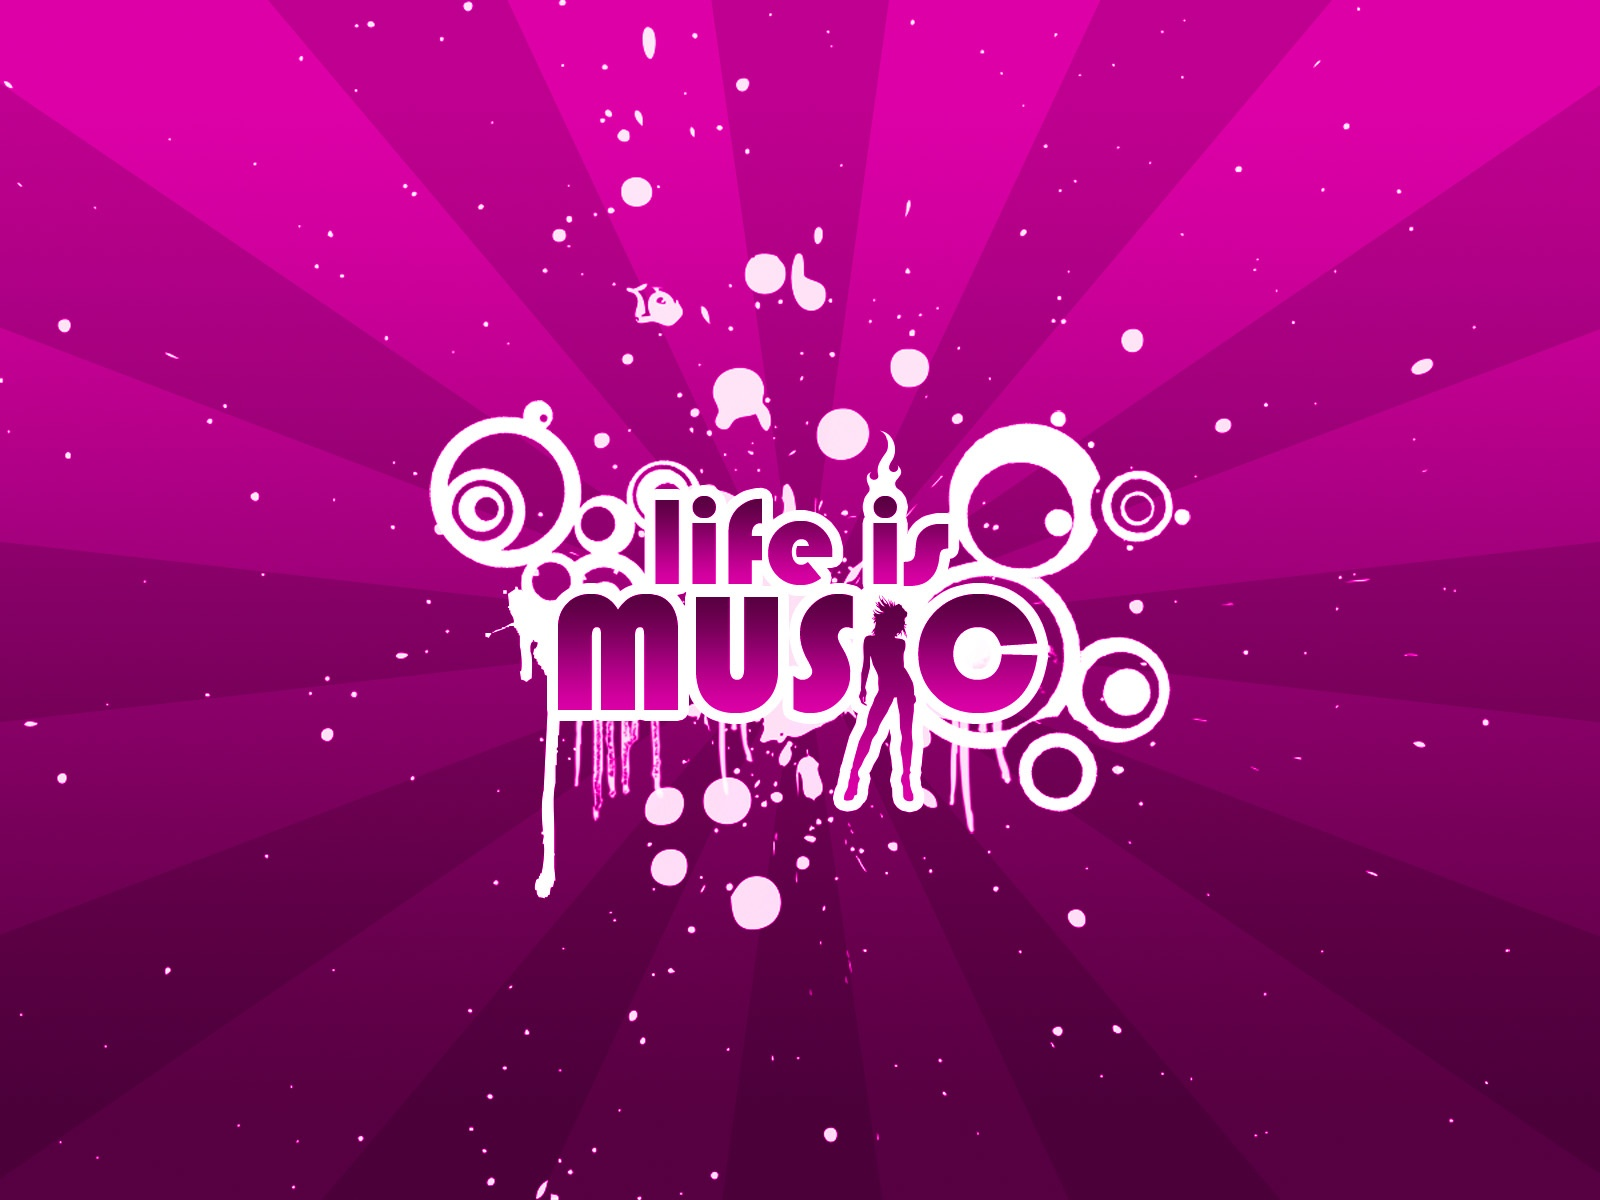 Pink Music Wallpaper: 無料壁紙 おしゃれな椅子が Pictures To Pin On Pinterest